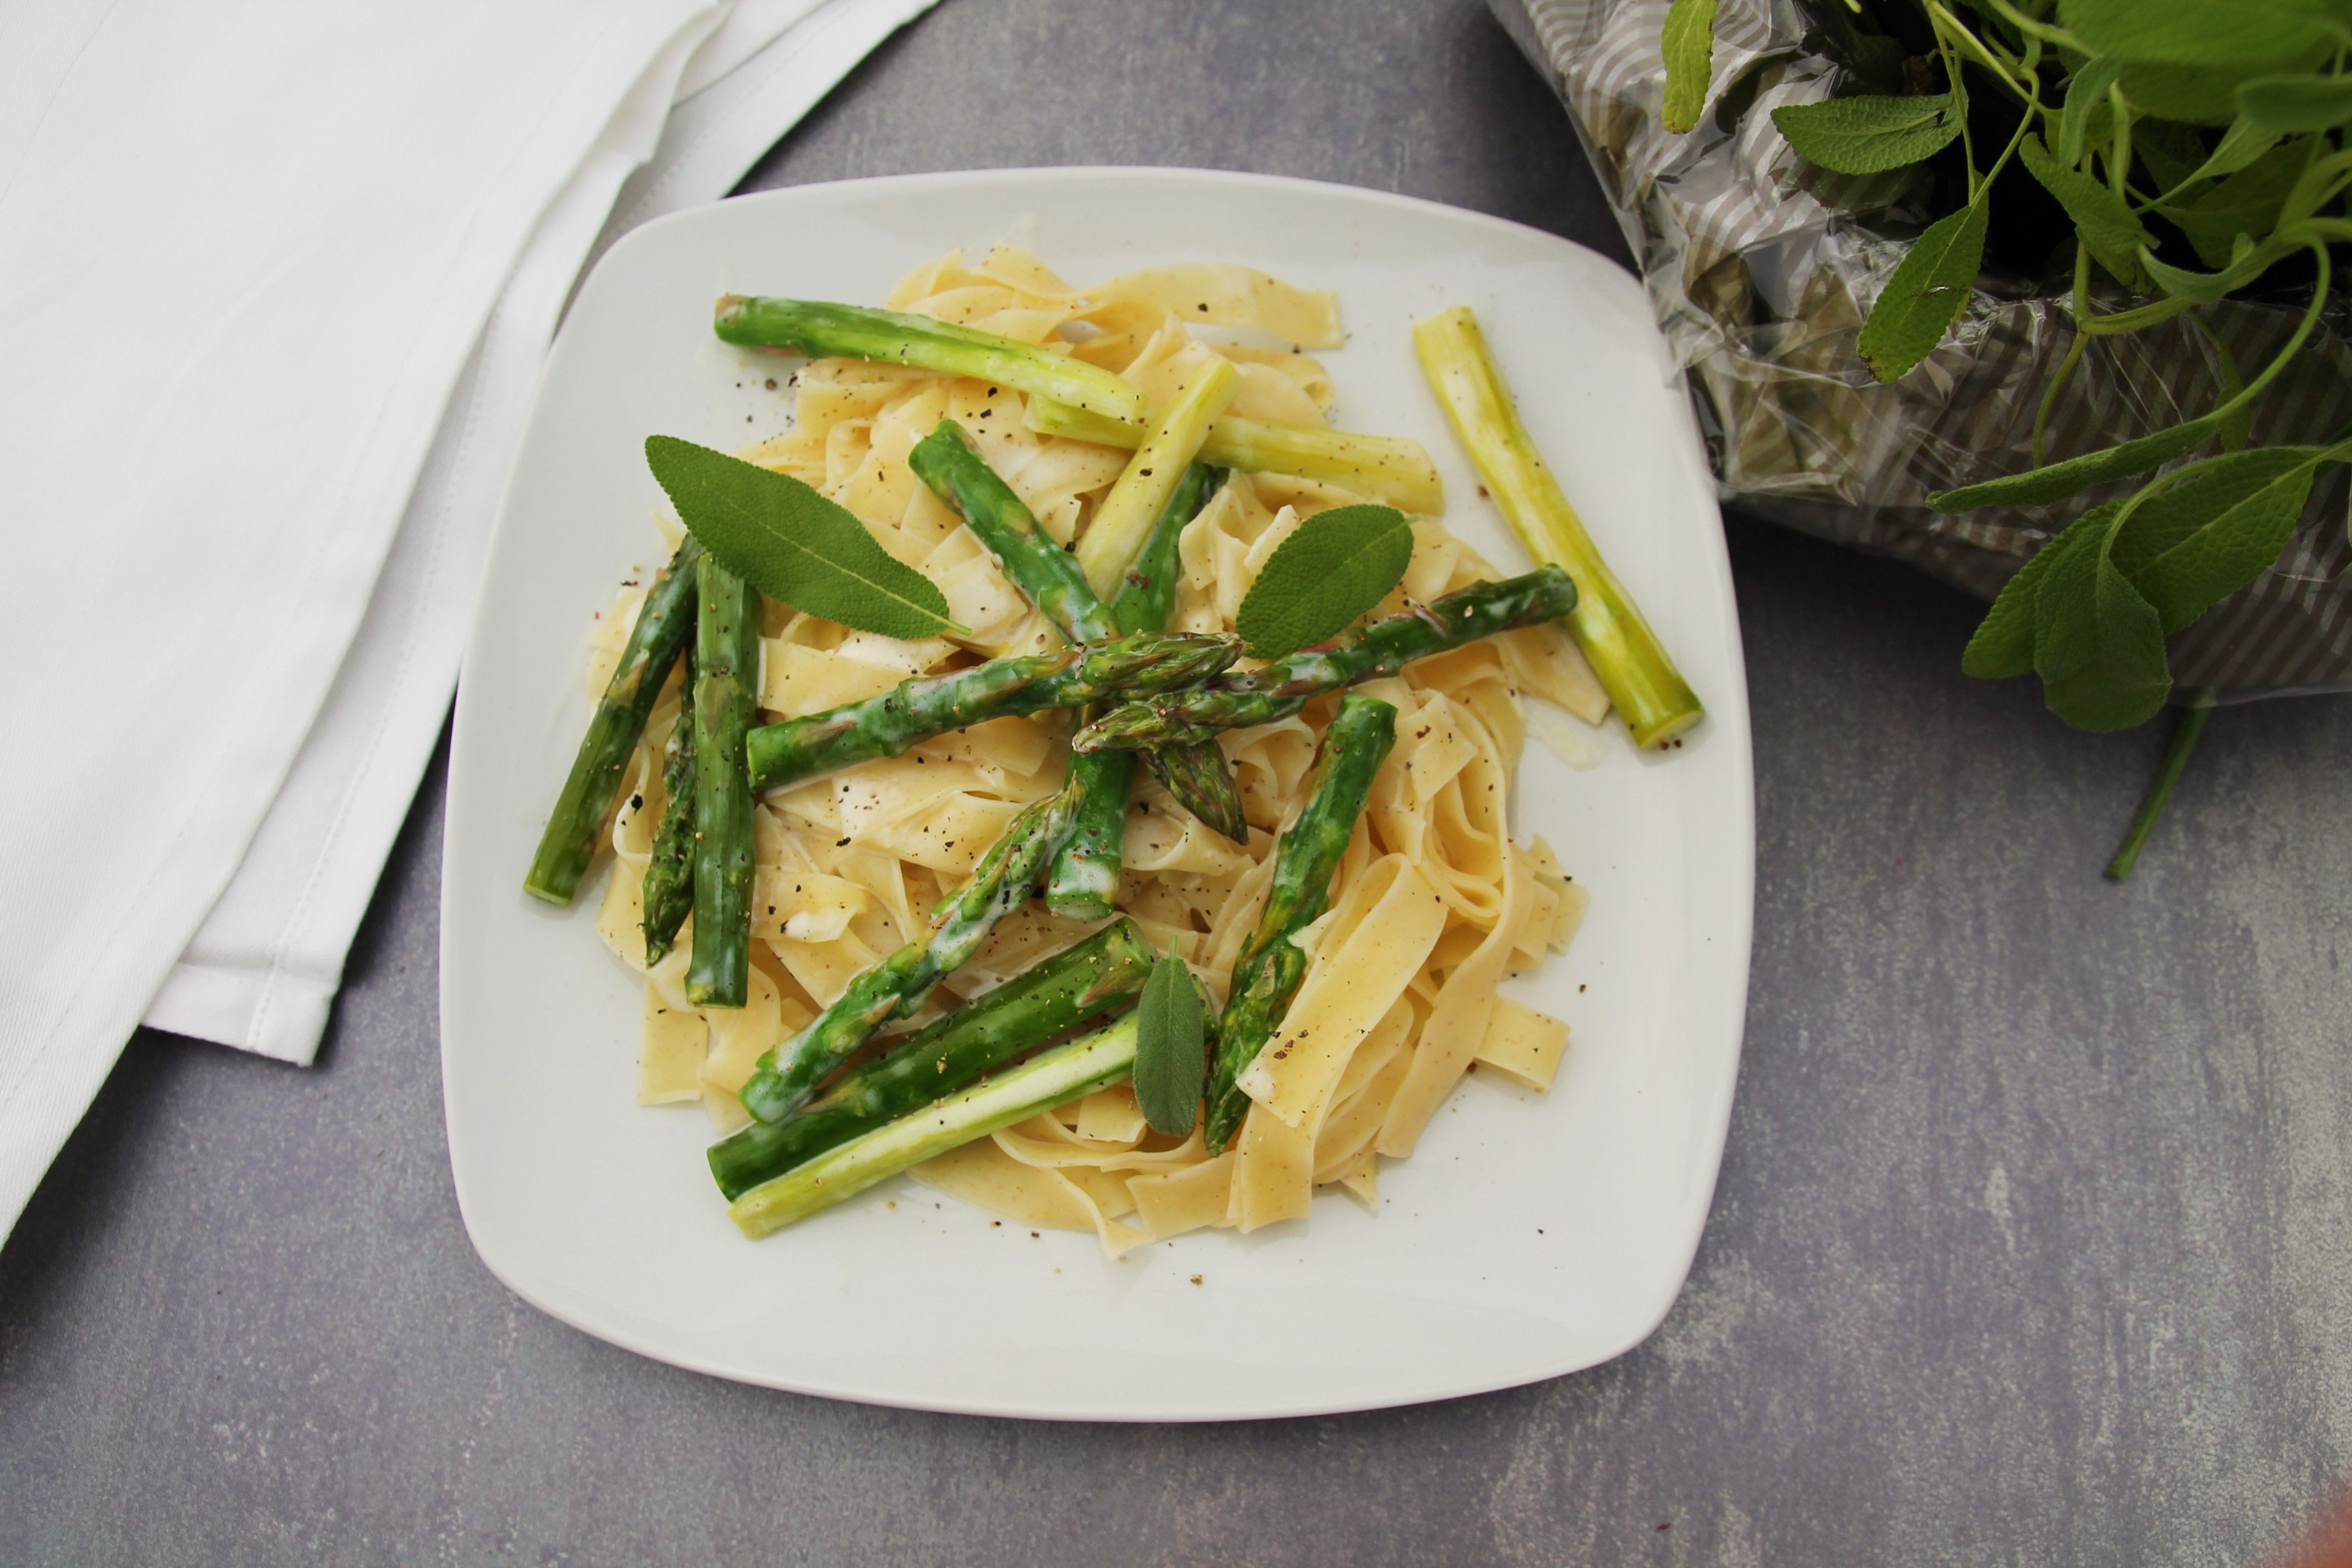 Gebratener Spargel mit Tagliatelle - C&B with Andrea